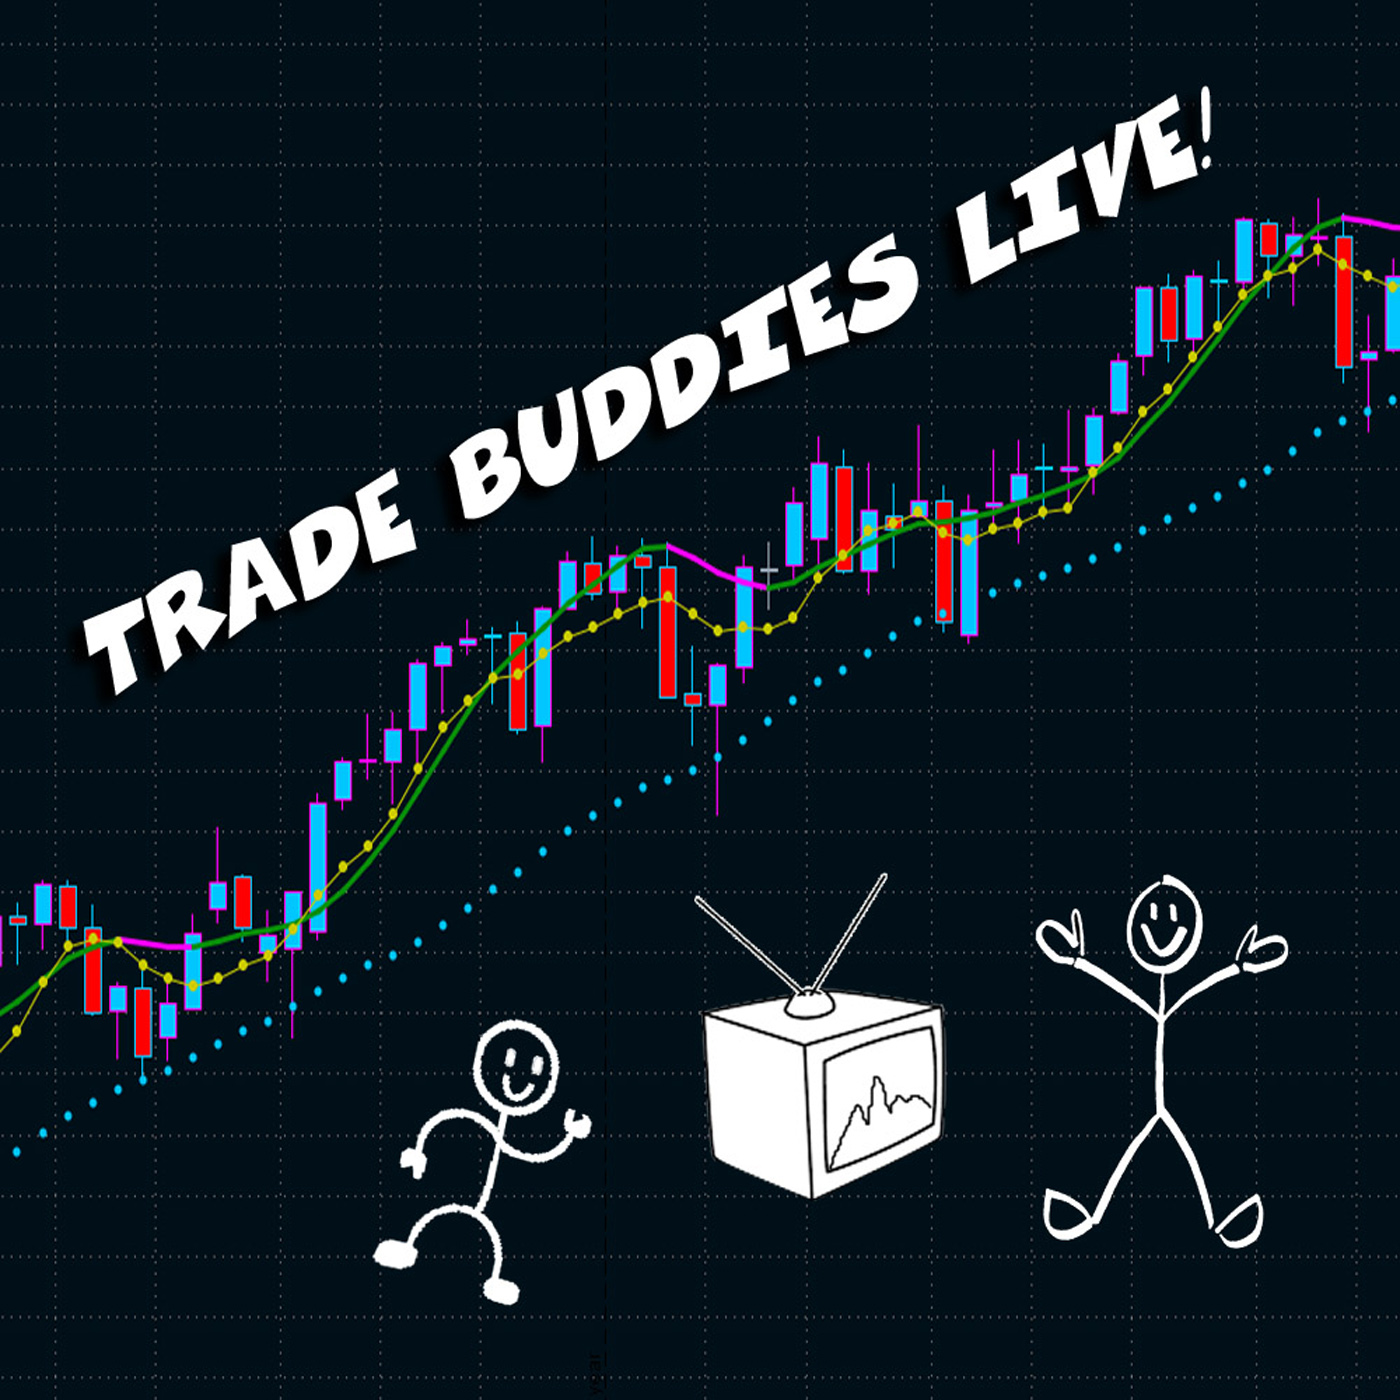 Trade Buddies Live – JVOND.COM